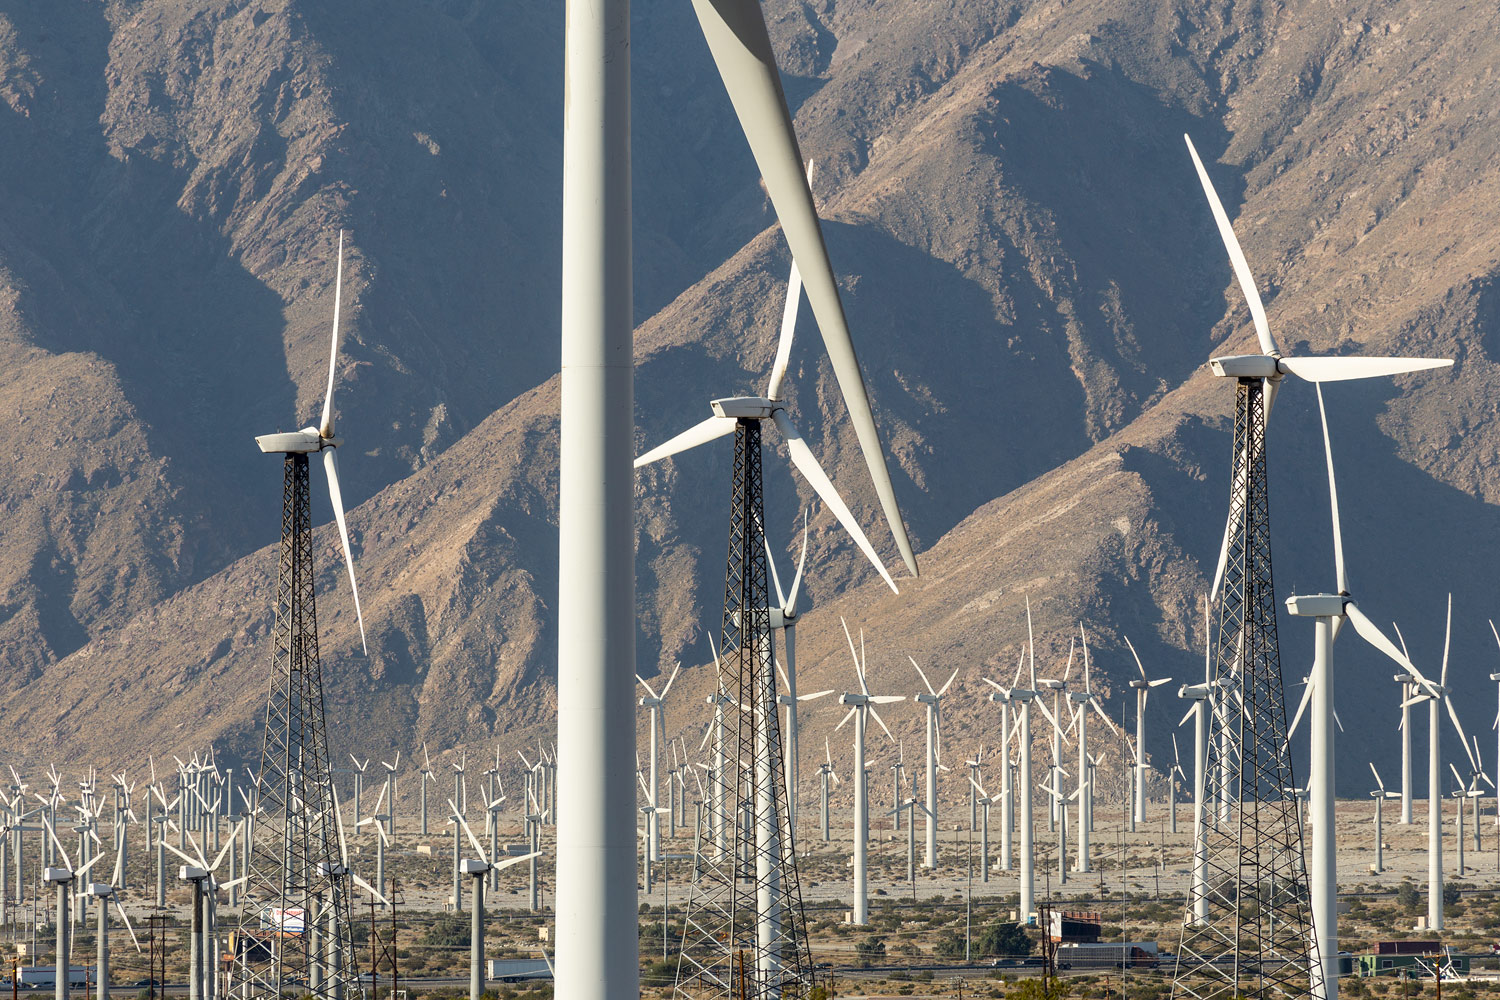 San Gorgonio Pass Wind Farm. Palm Springs, CA. Study #2 (33,55.4714N 116,33.1250W)